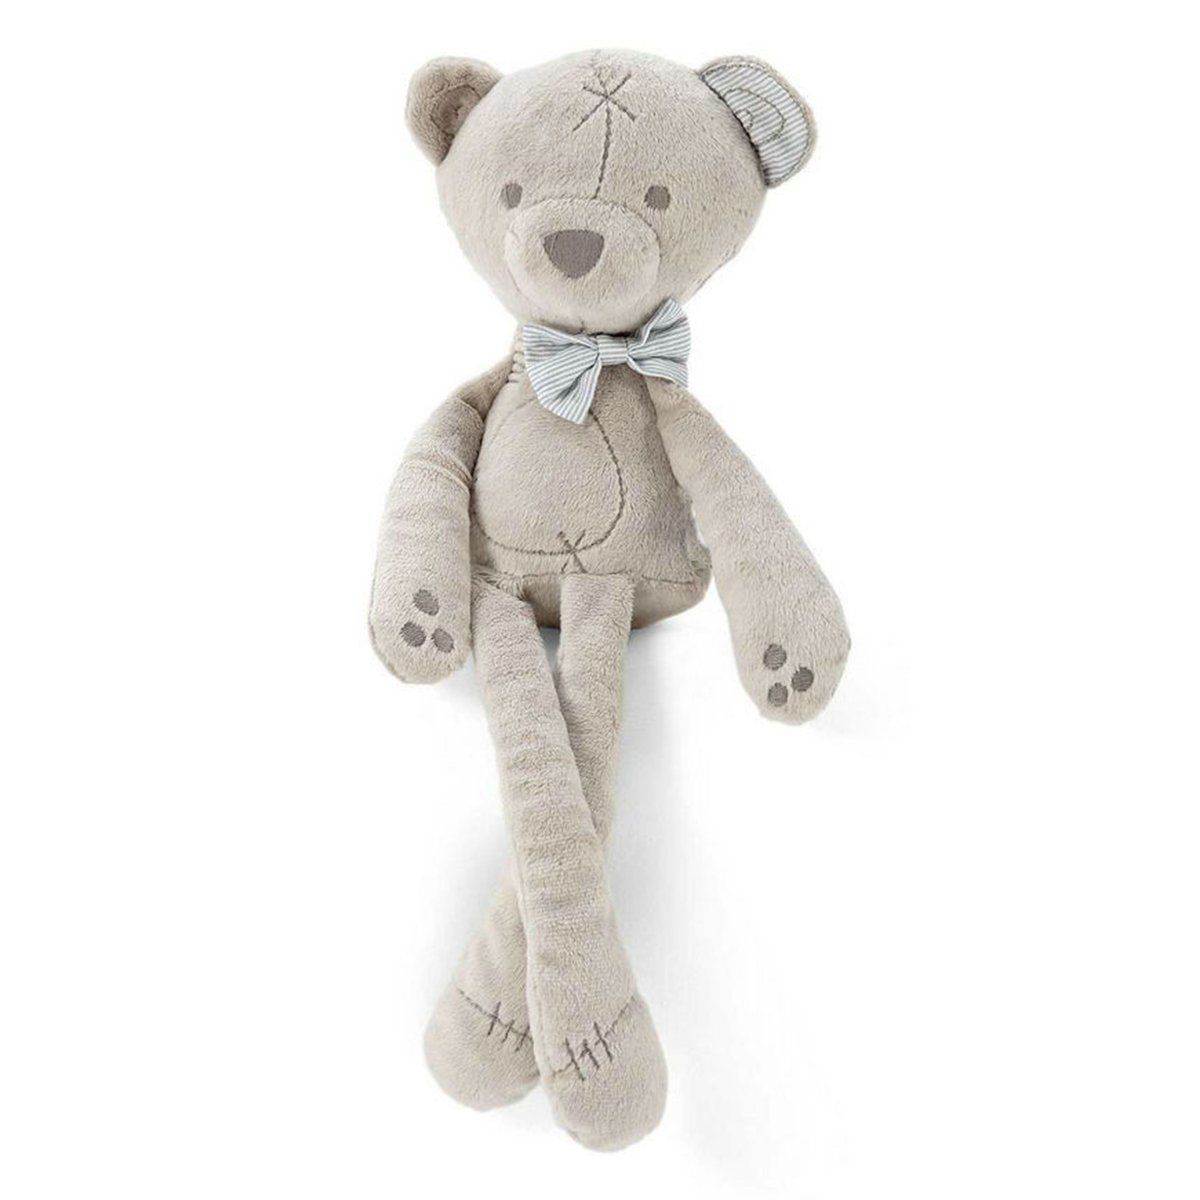 2019 Hot Sale Soft Plush Baby Kids Stroller Bed Hanging Musical Bear Toy Lovely Stuffed Bear Toy Children's Plush Cute Ornaments